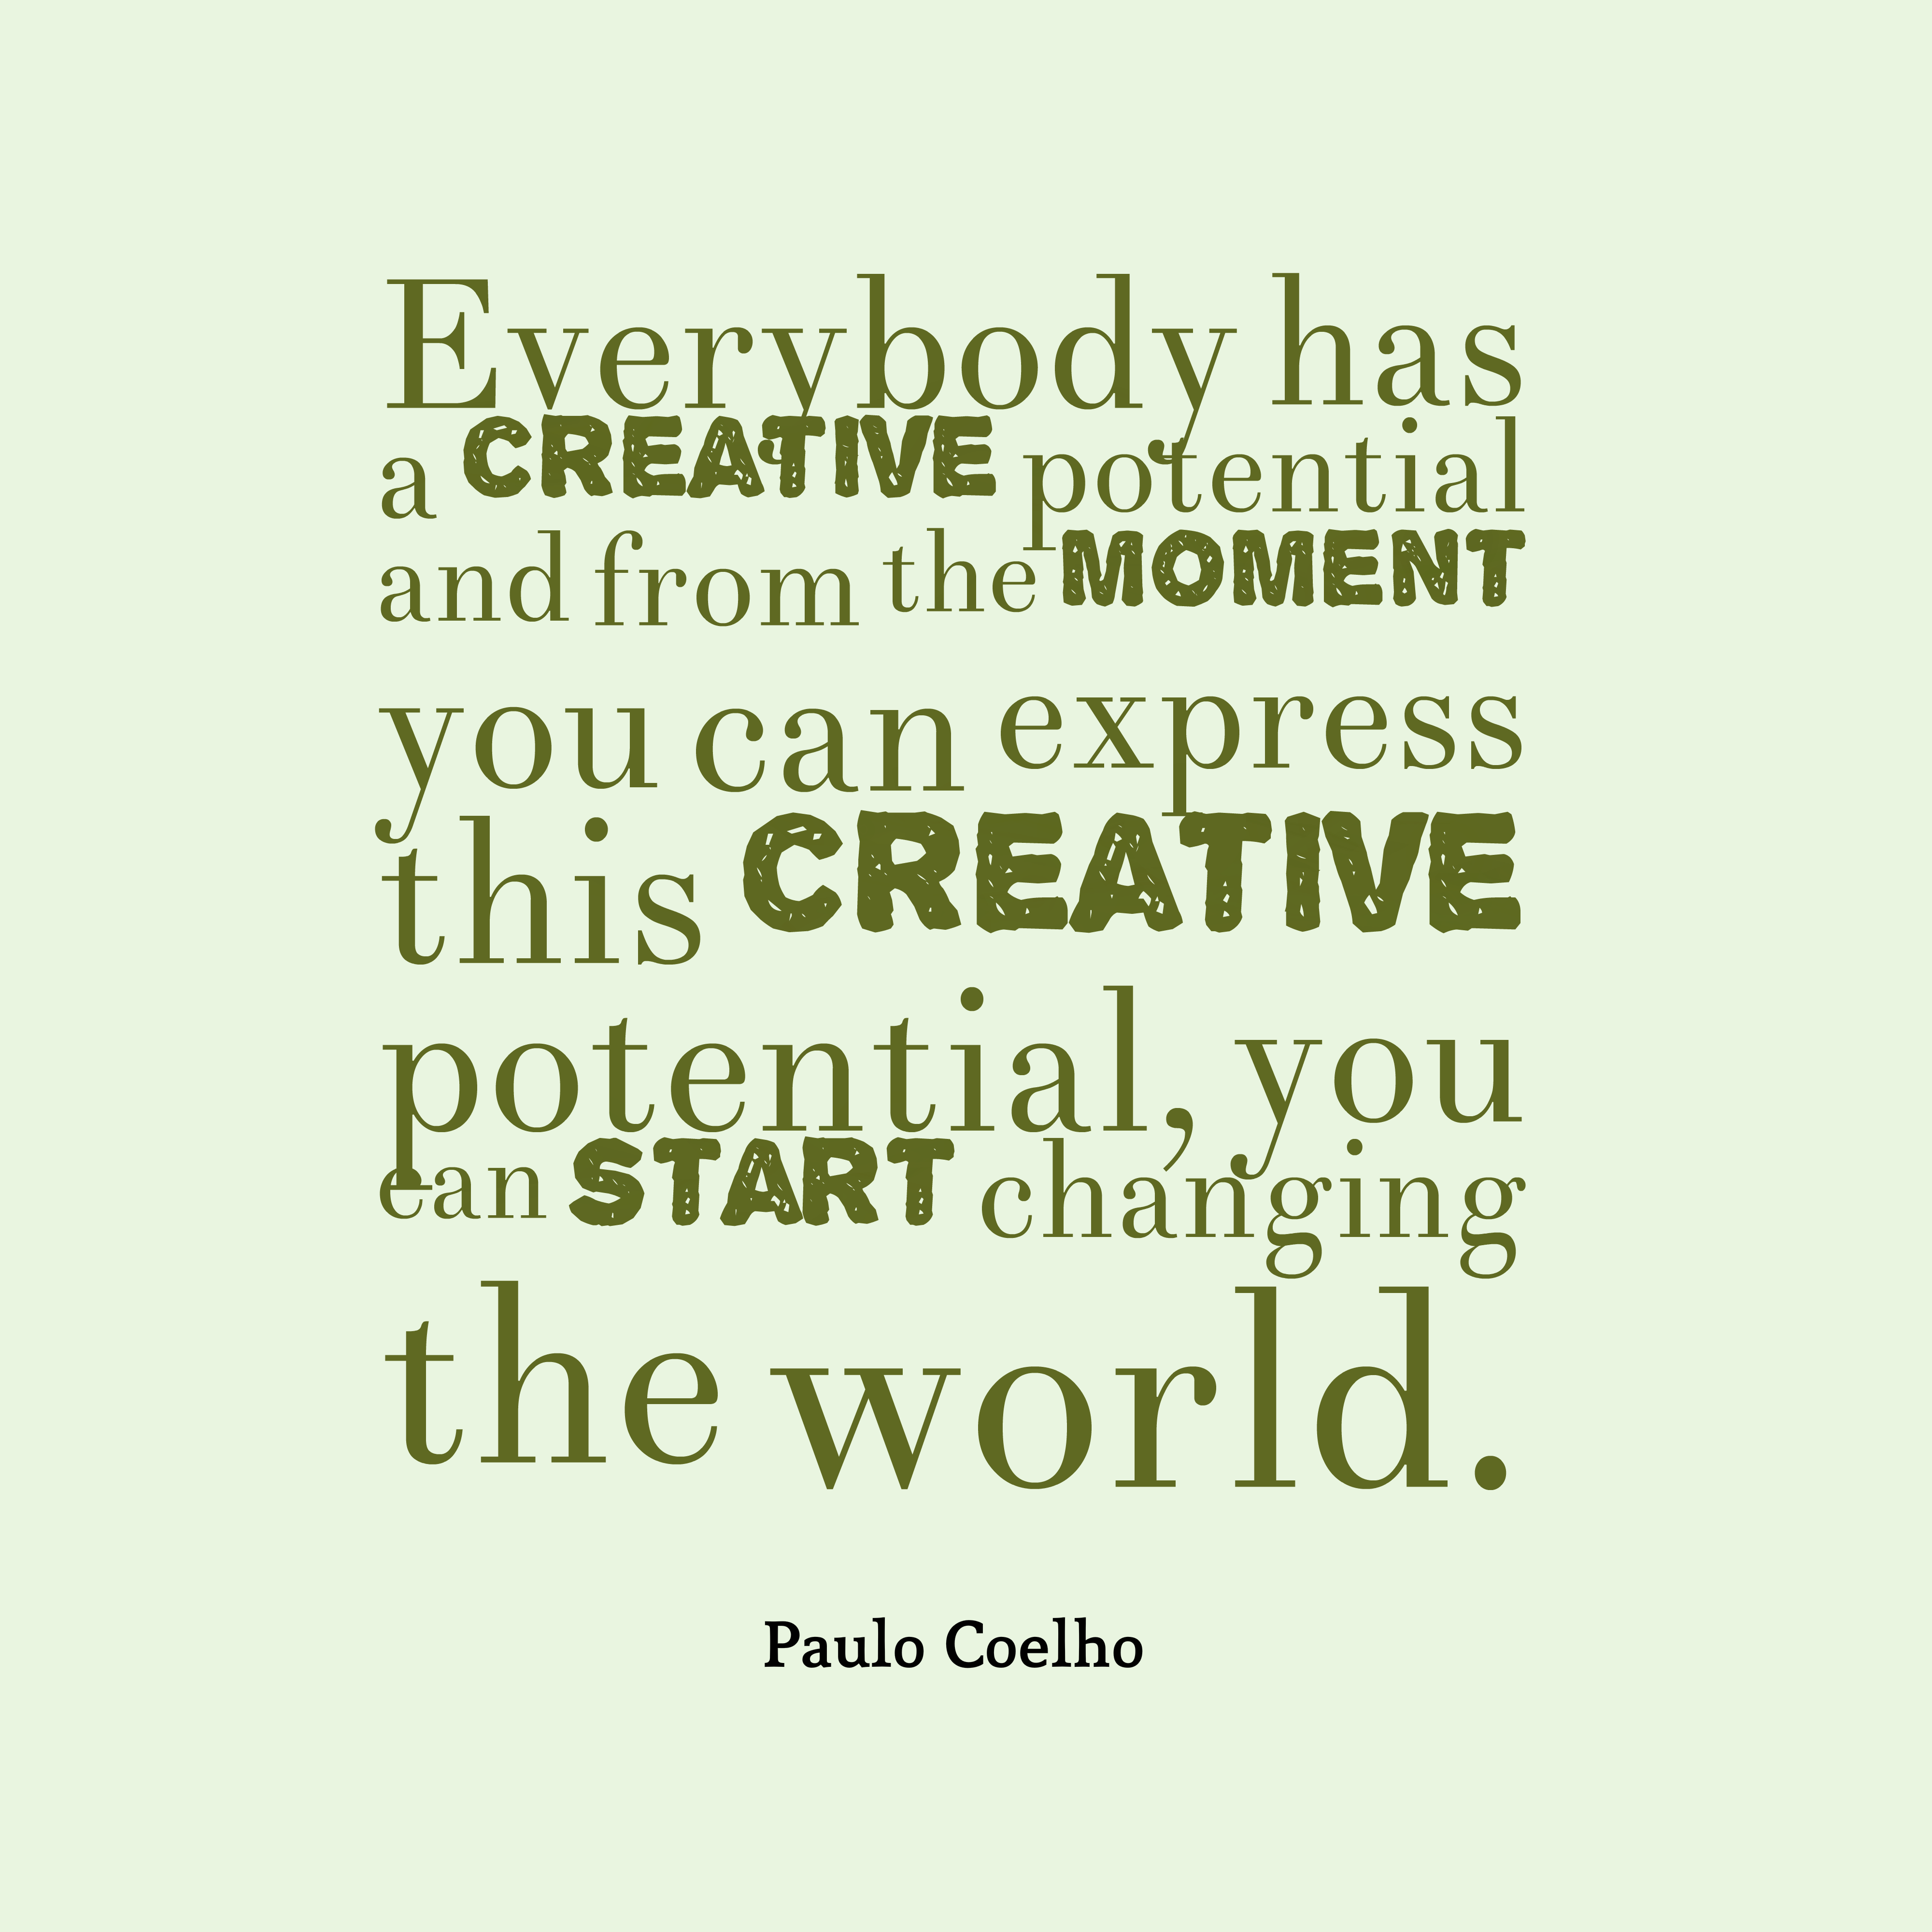 Paulo Coelho Quote About Creative